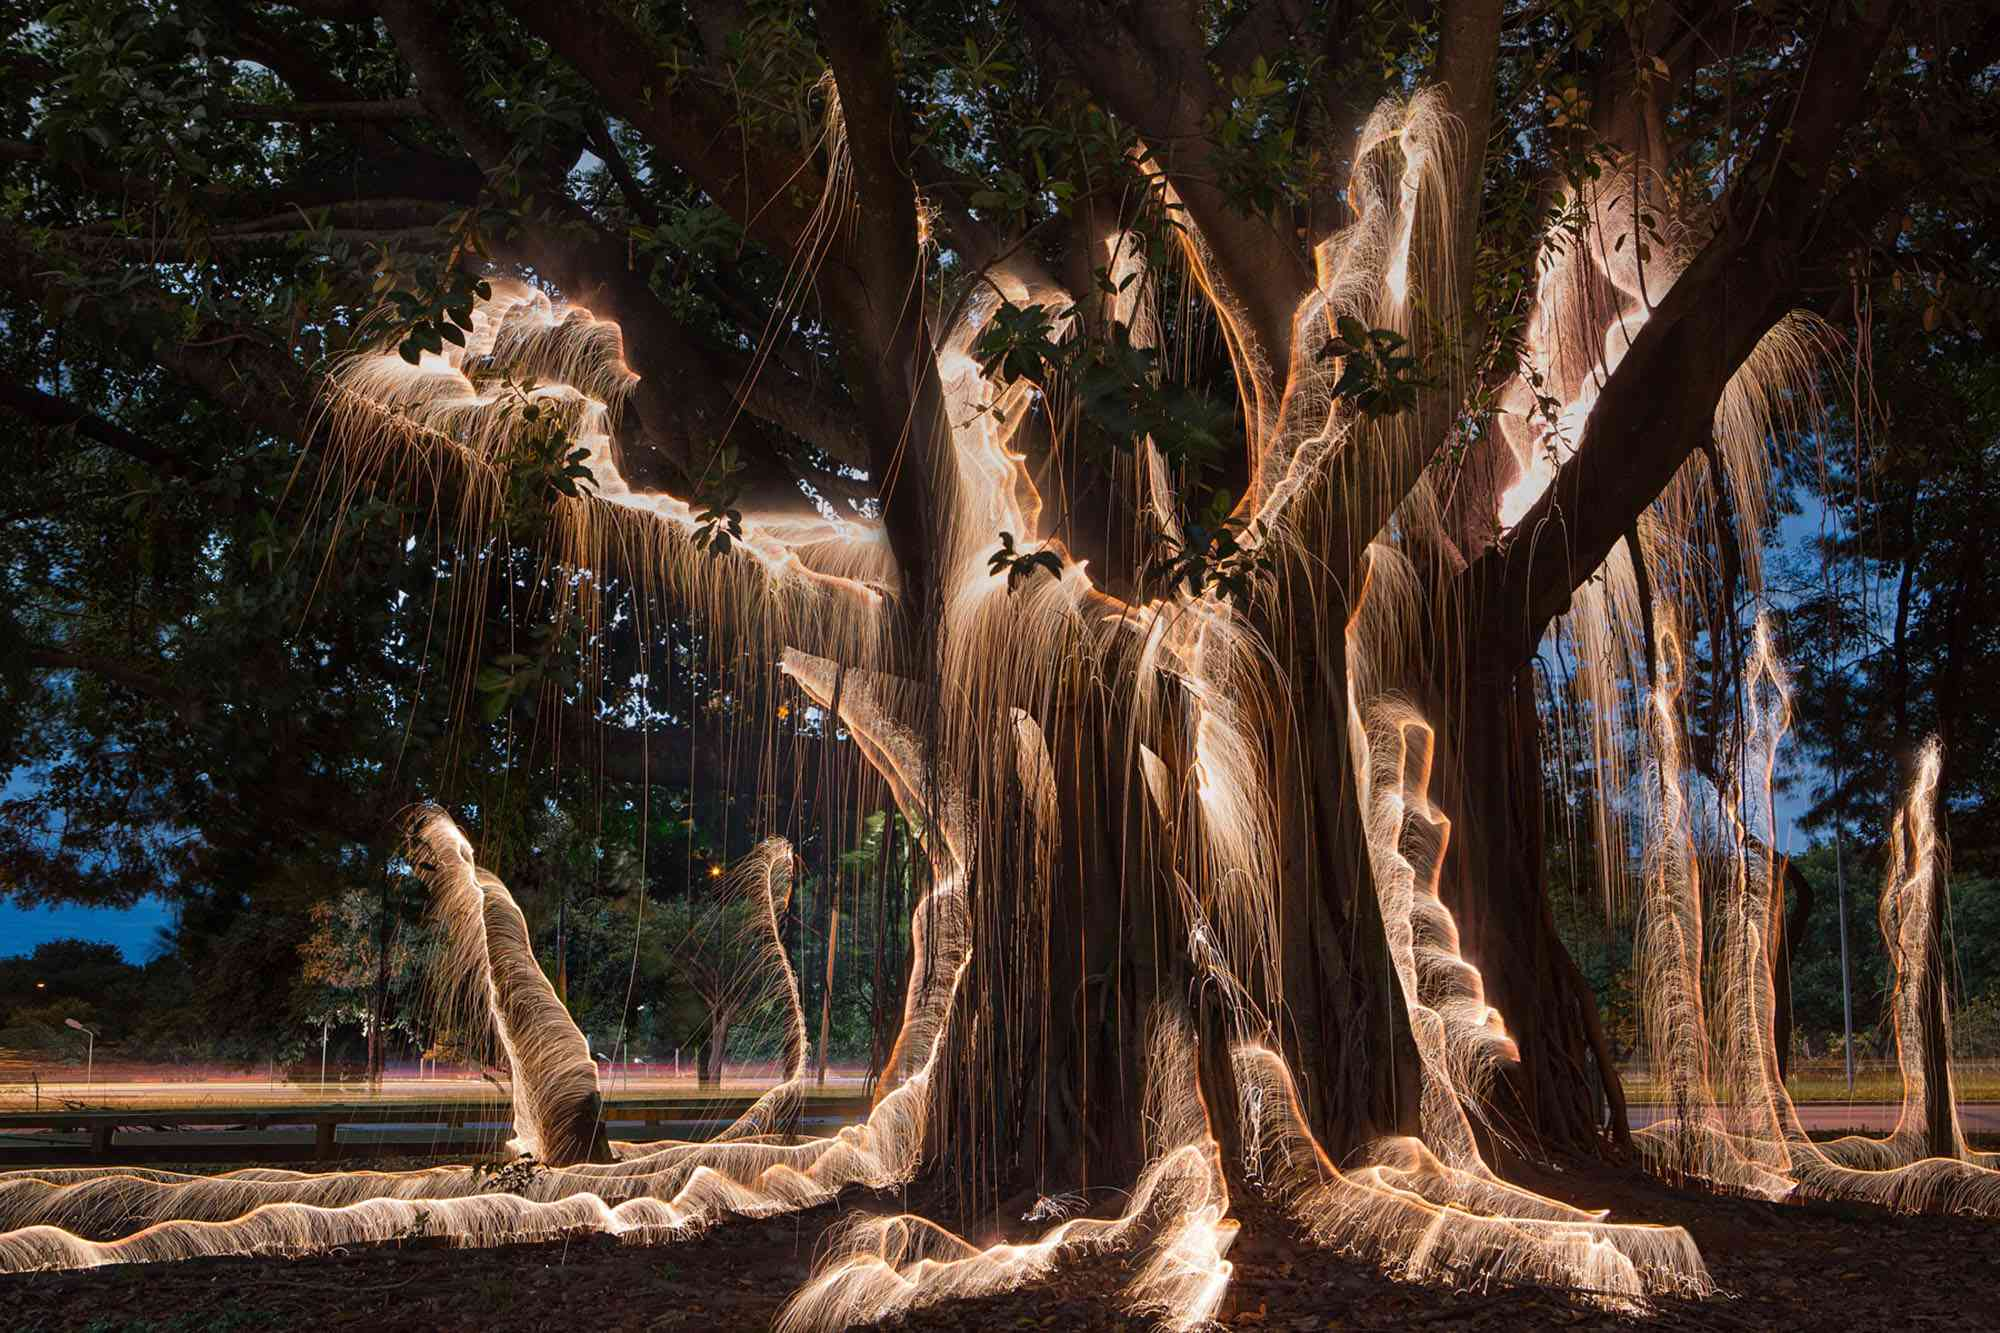 Impermanent Structures light painted trees photographs Vitor Schietti